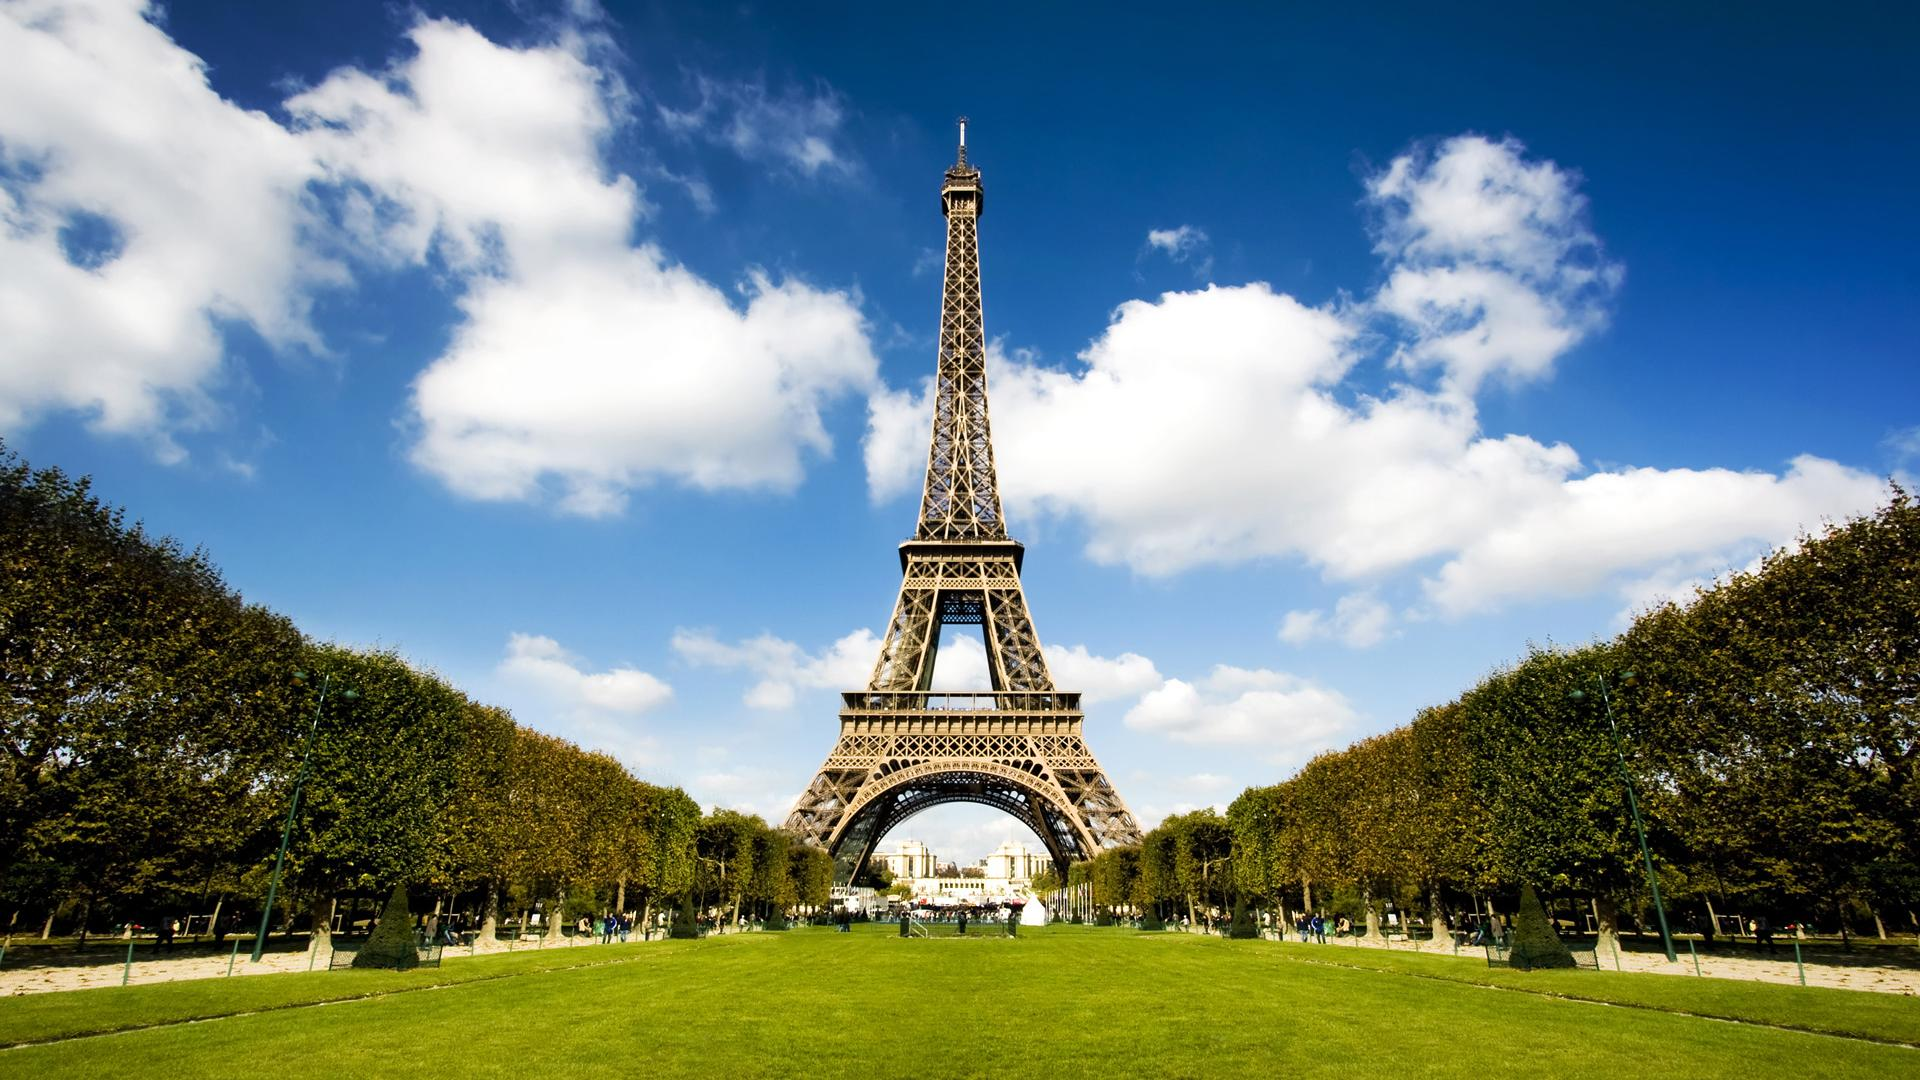 Eiffel Tower Hd Wallpaper Picture 1920x1080px